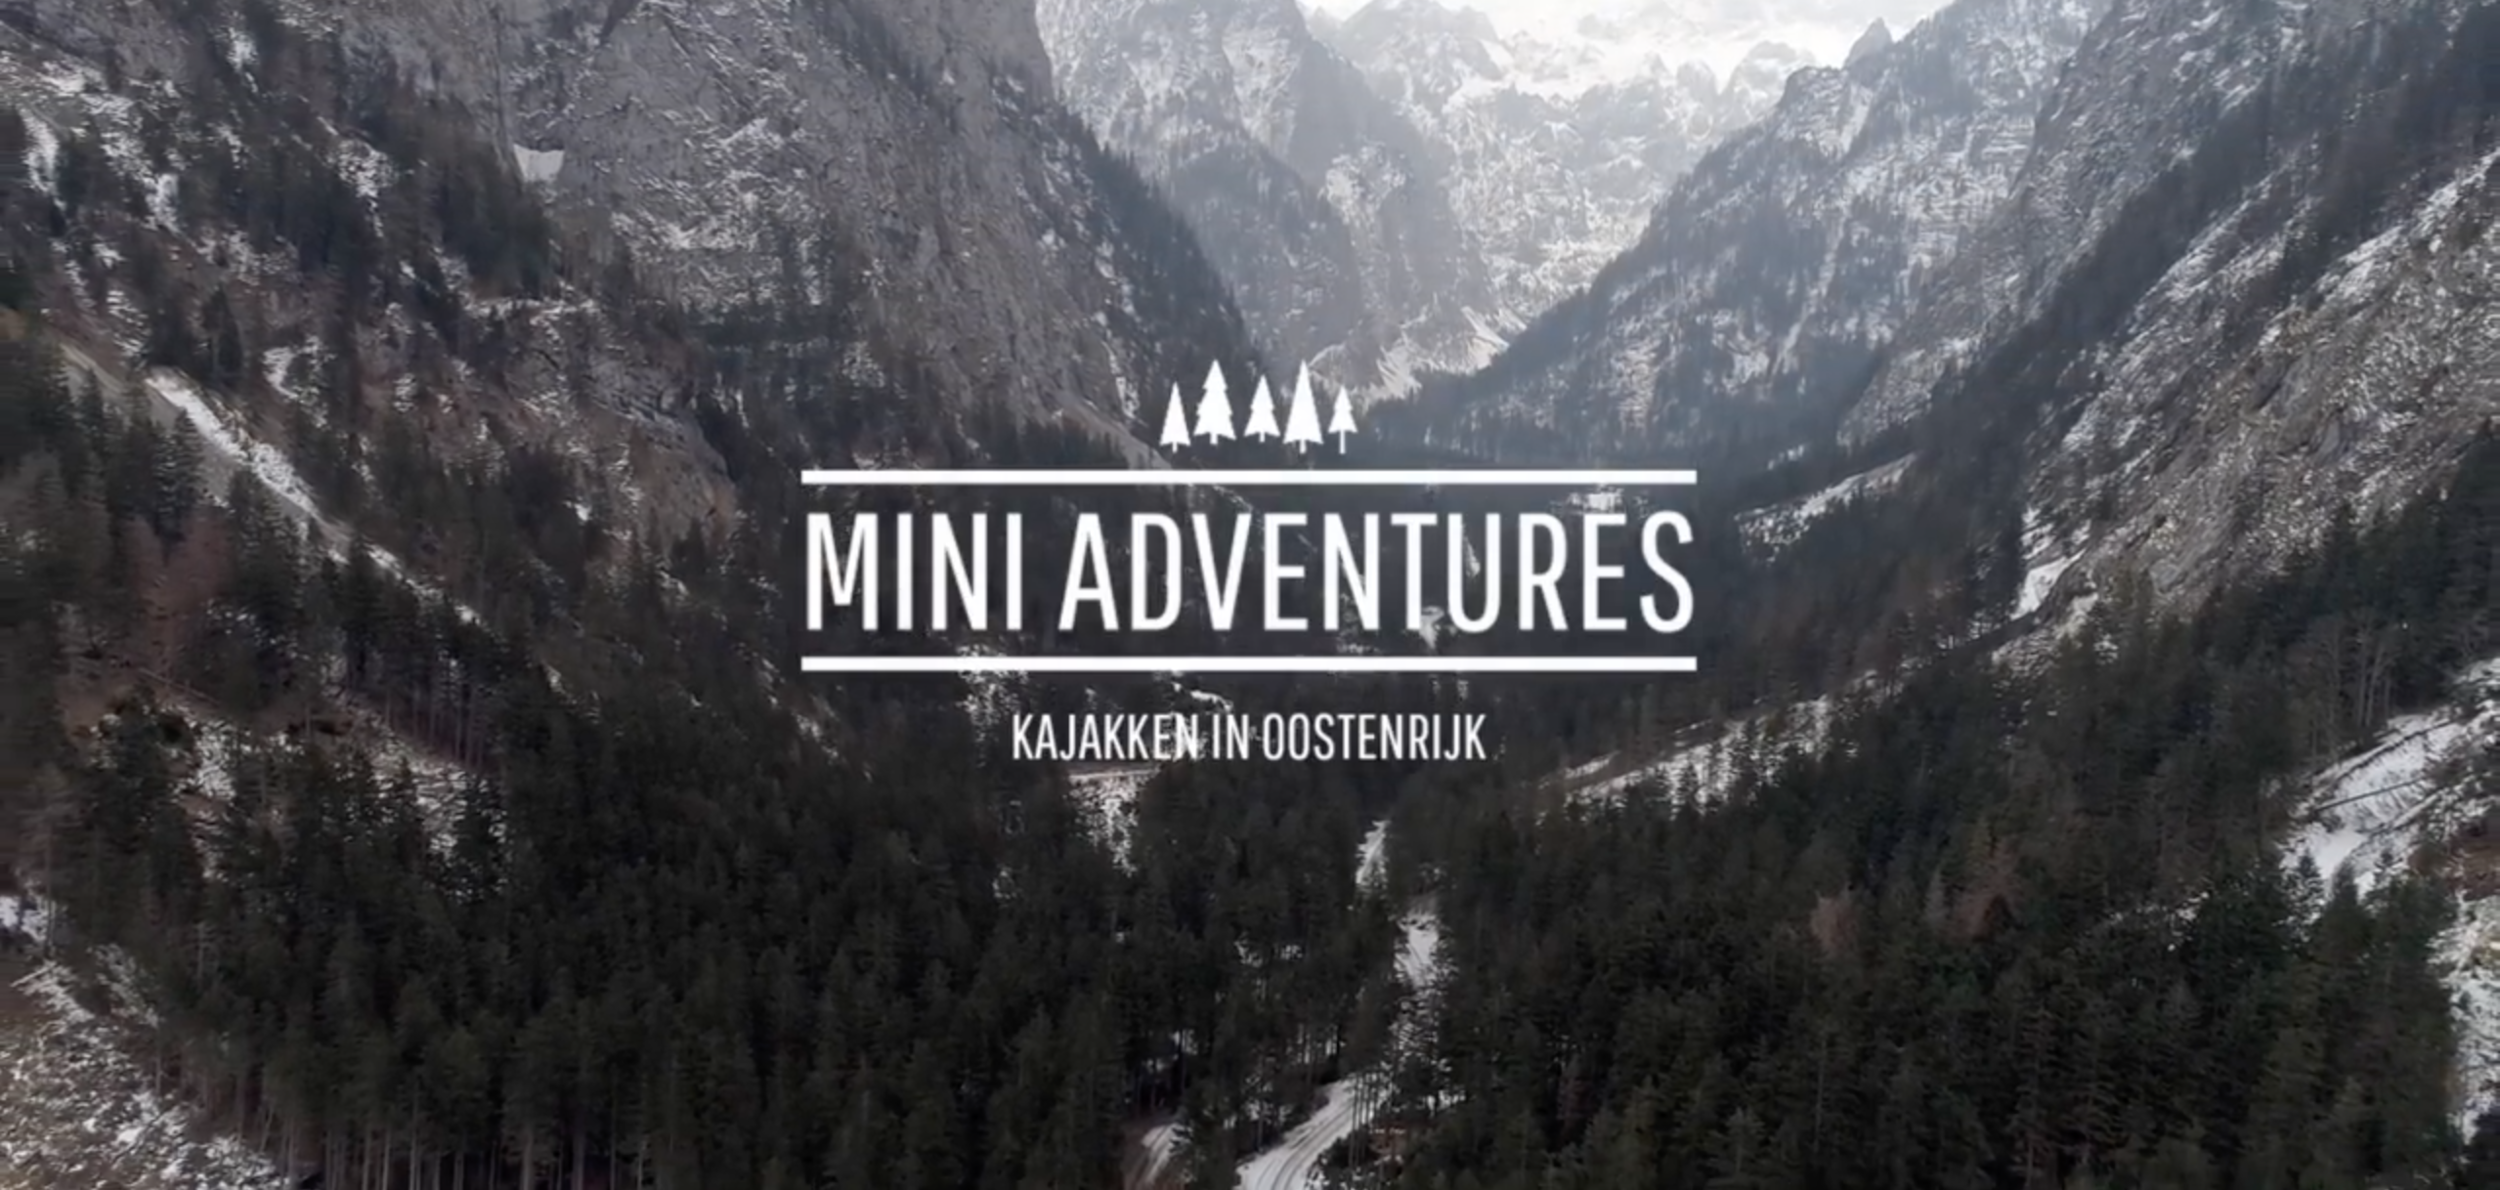 MINI Adventures is part of the MINI Countryman campaign, to promote their new line of cars which is perfect for outdoor activities.